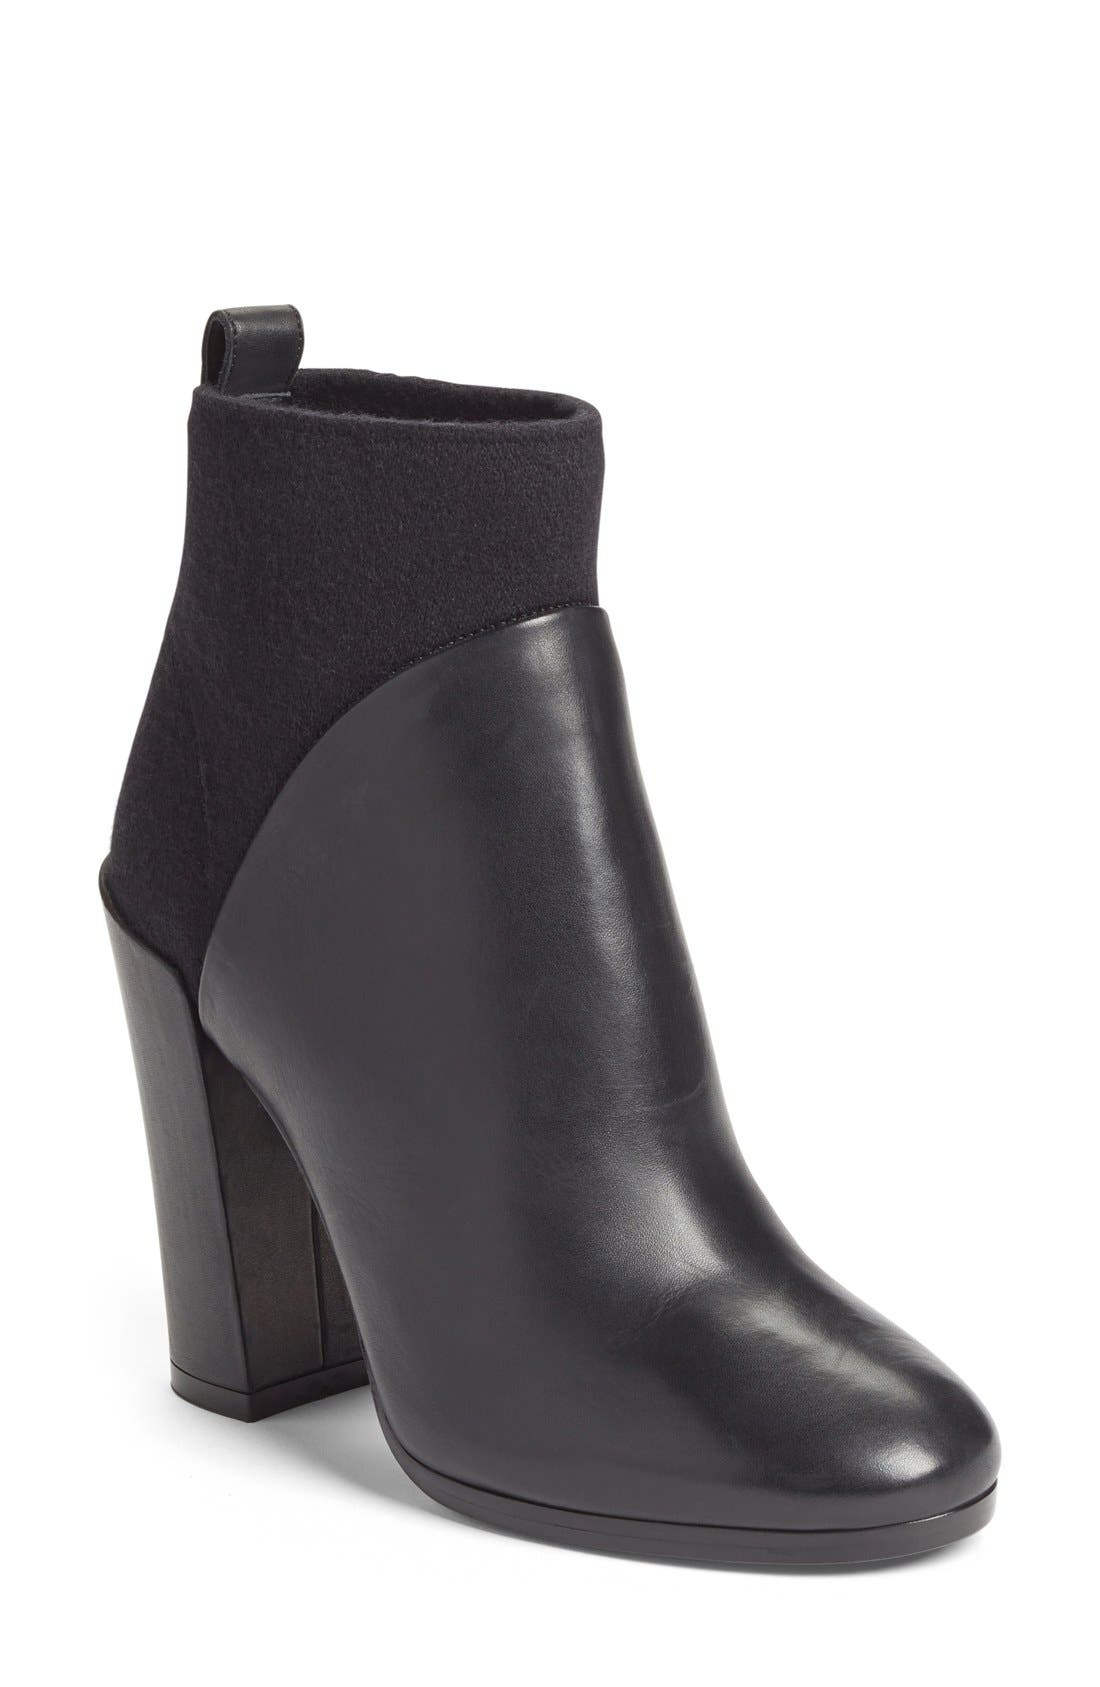 Alternate Image 1 Selected - Vince 'Emerson' Ankle Bootie (Women)